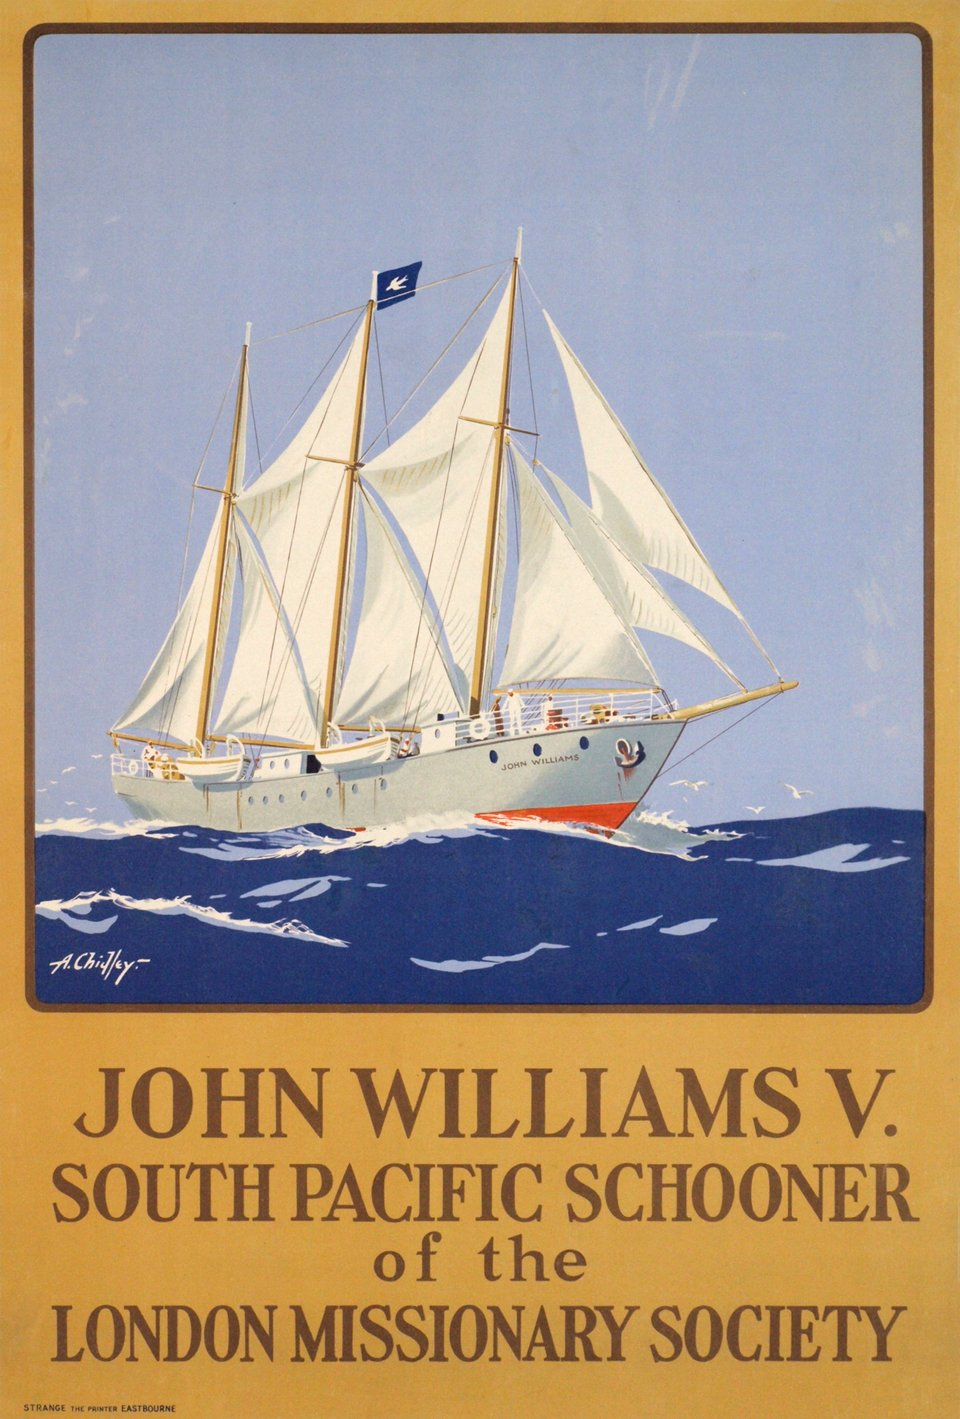 John Williams V., South Pacific Schooner – Vintage poster – A. CHIDLEY – 1930